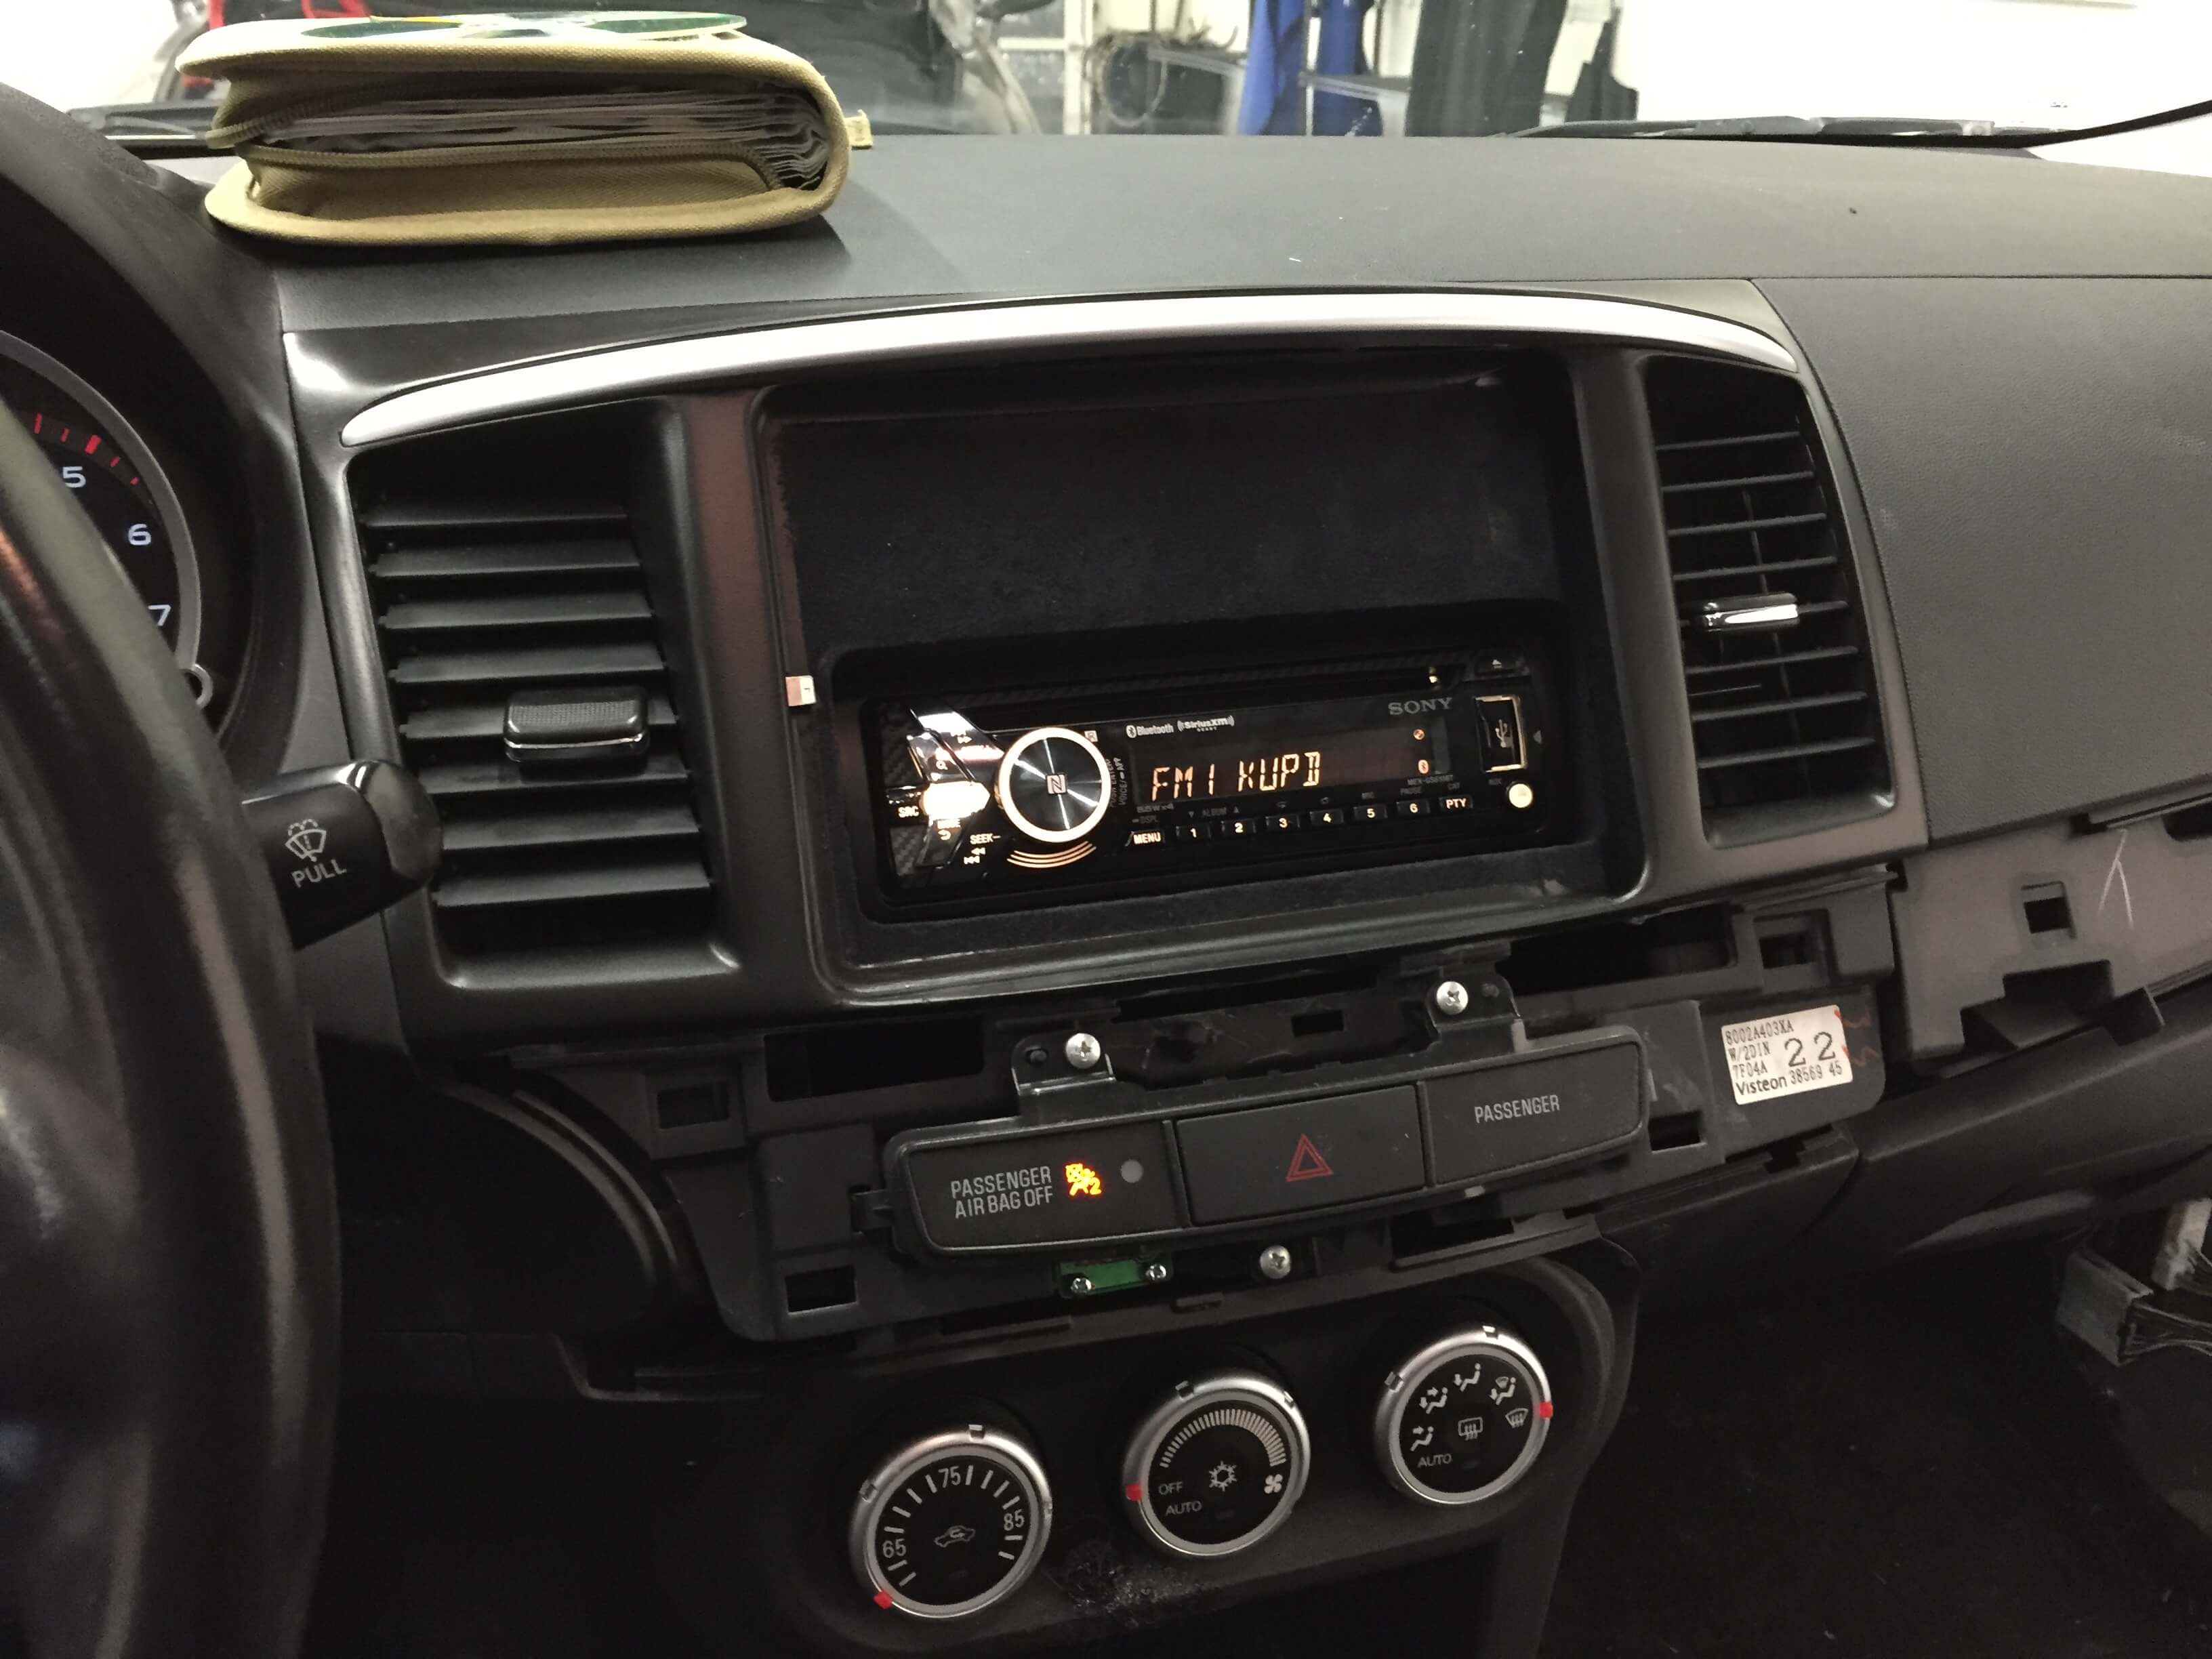 2008 Mitsubishi Lancer Gets An Ipad In The Dash And A Sound System Starter Location Install